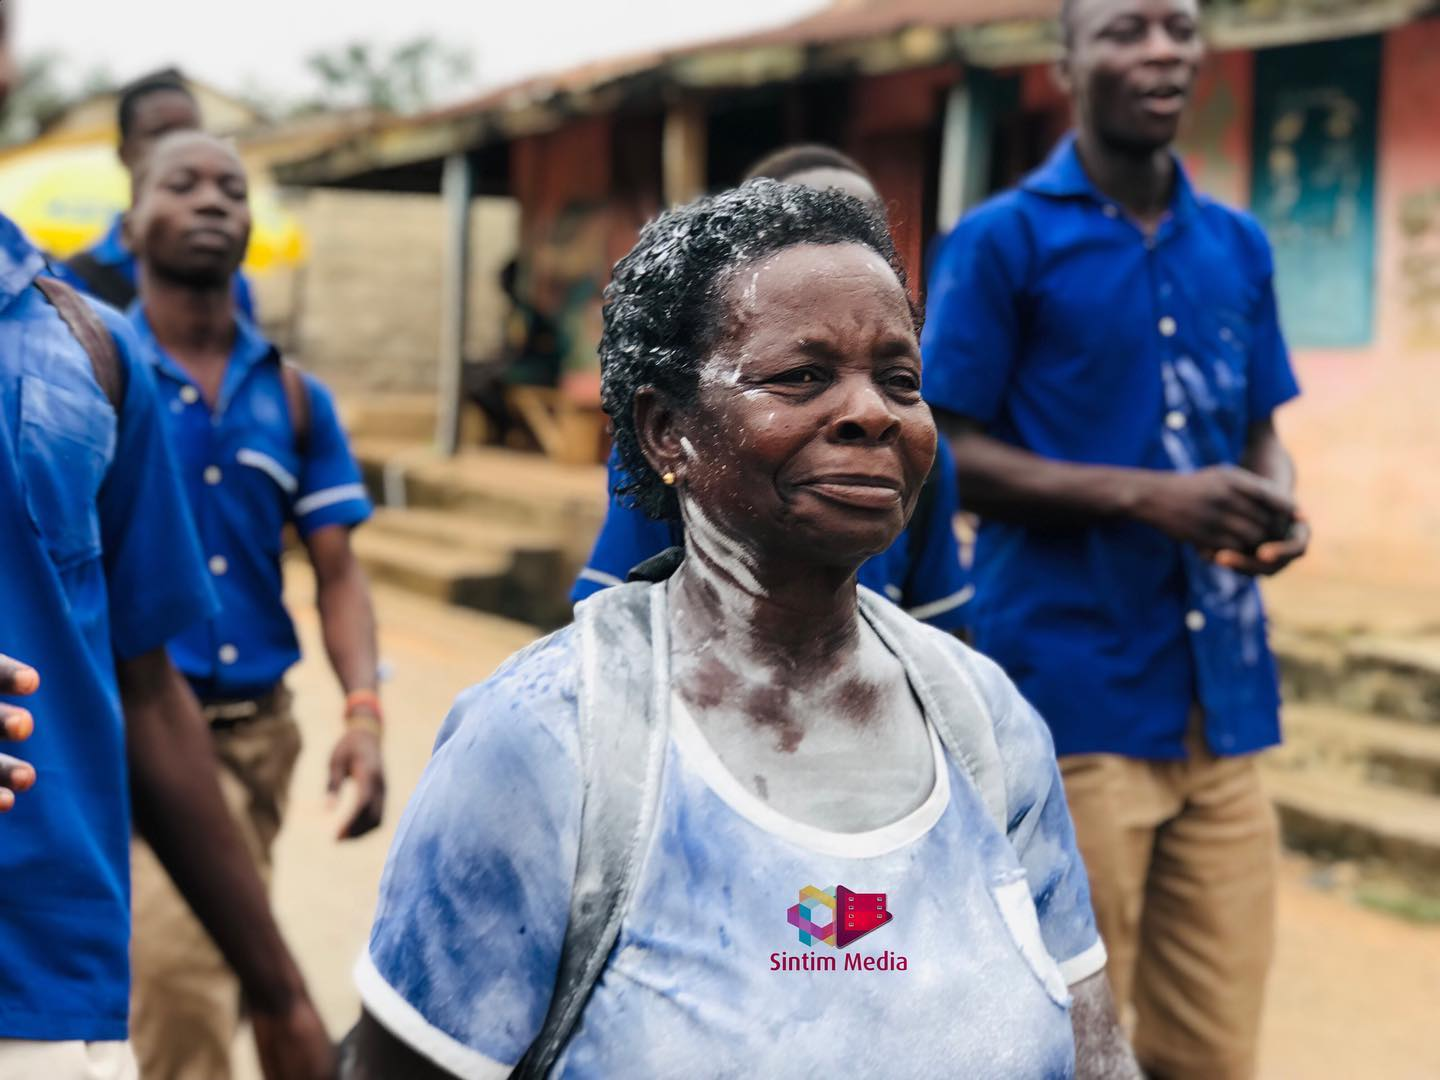 119522451 3592326820800579 1843147287744992995 o A 57-year-old woman jubilates as she completes her junior secondary education